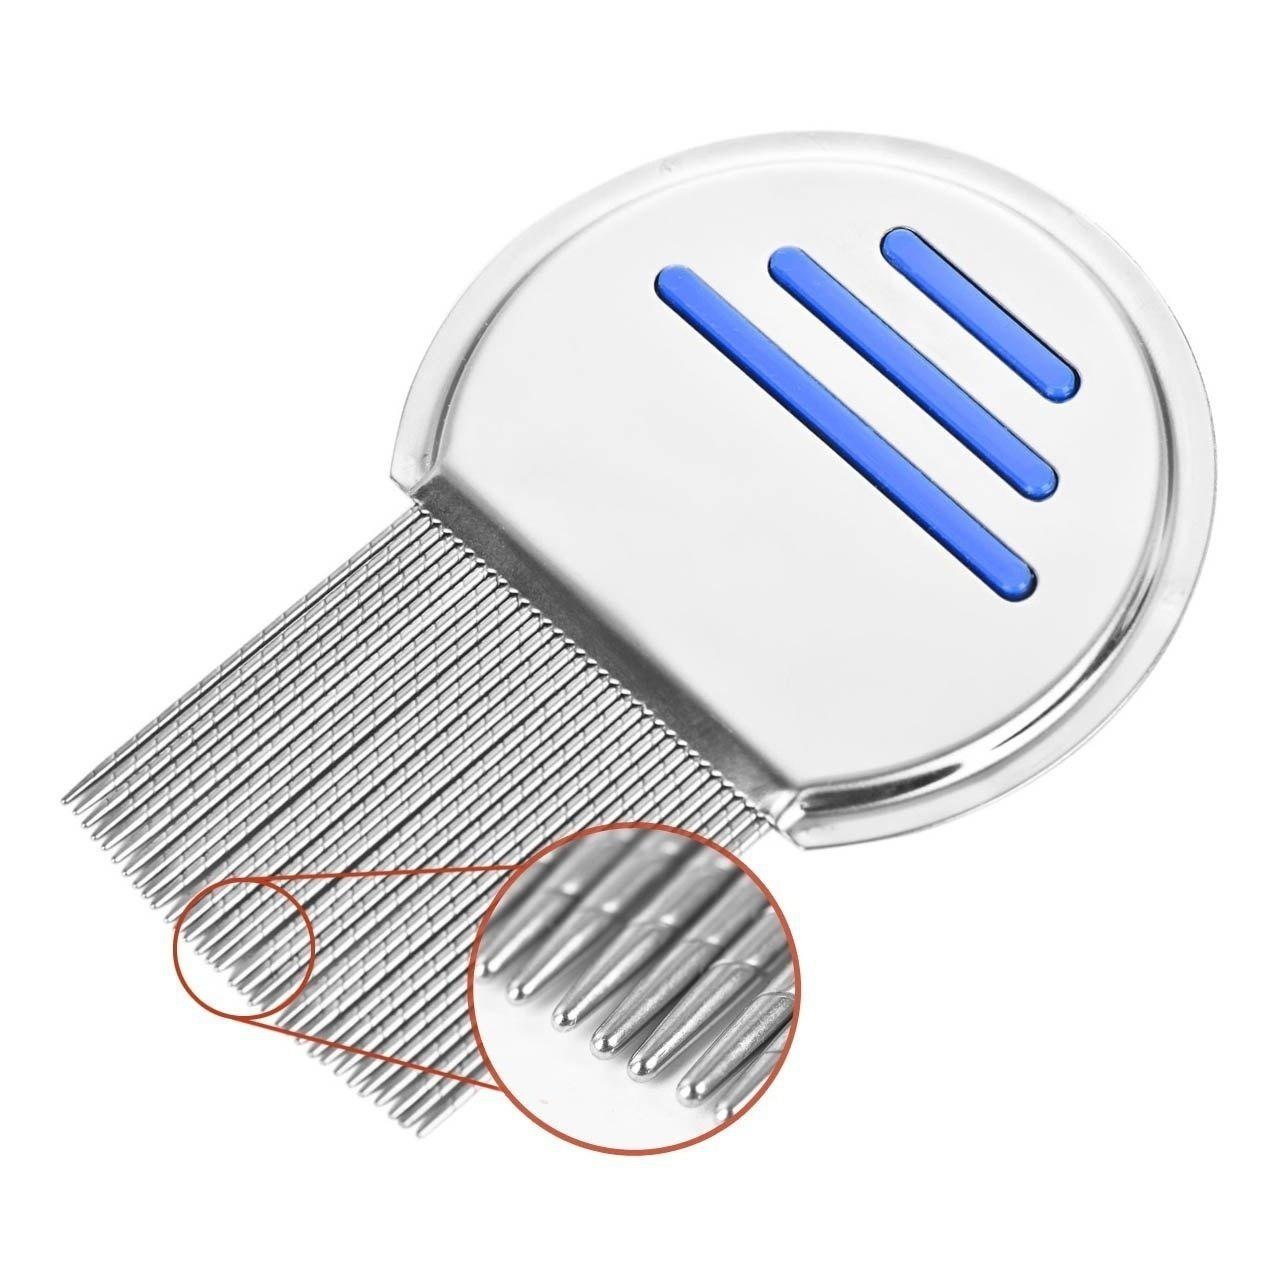 wyspring Professional Stainless Steel Comb for Safe Lice Treatment - BLUE